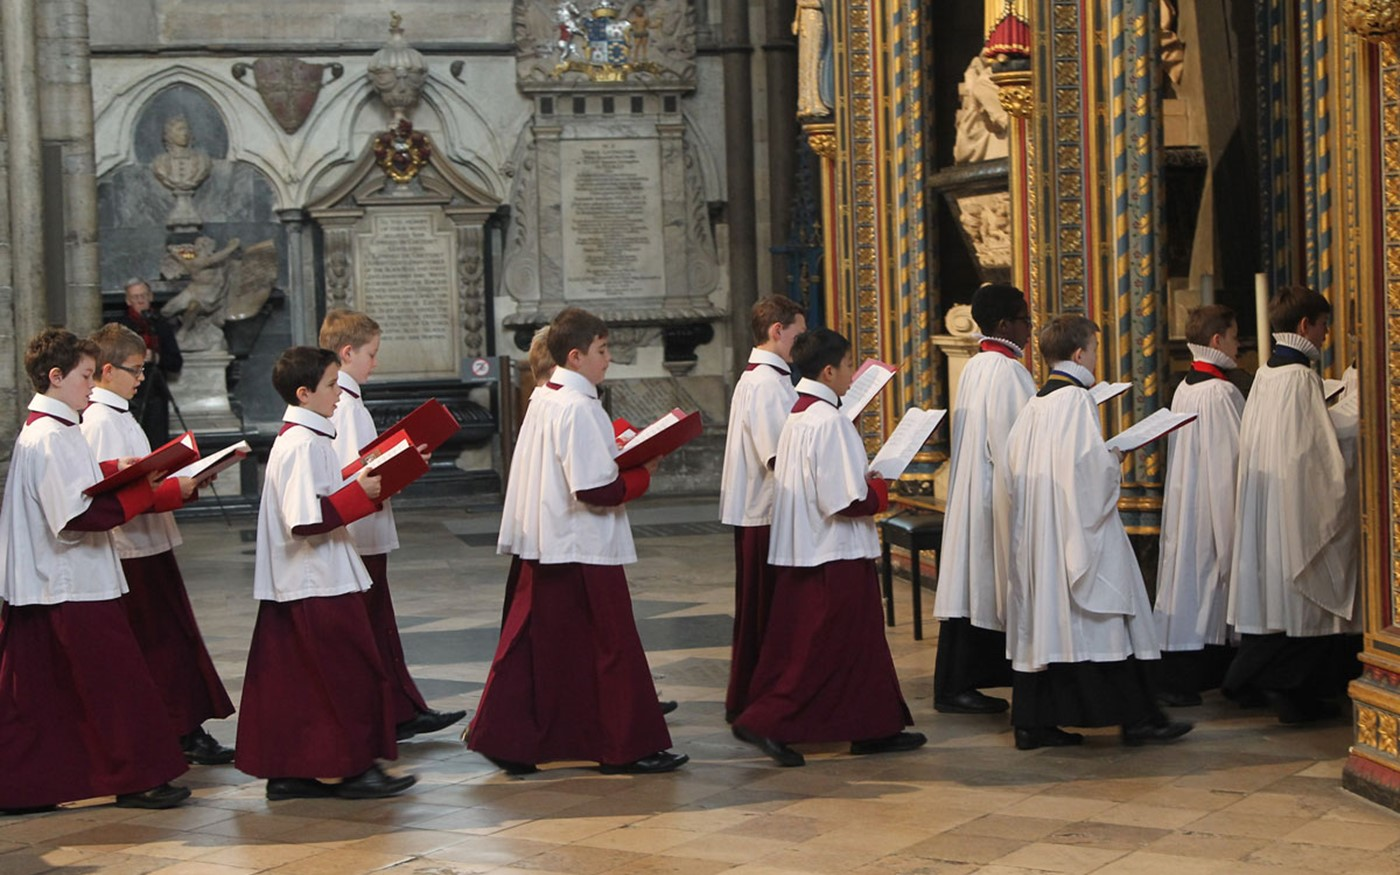 The combined choirs of Westminster Abbey, St Paul's Cathedral and Westminster Cathedral process through the Abbey